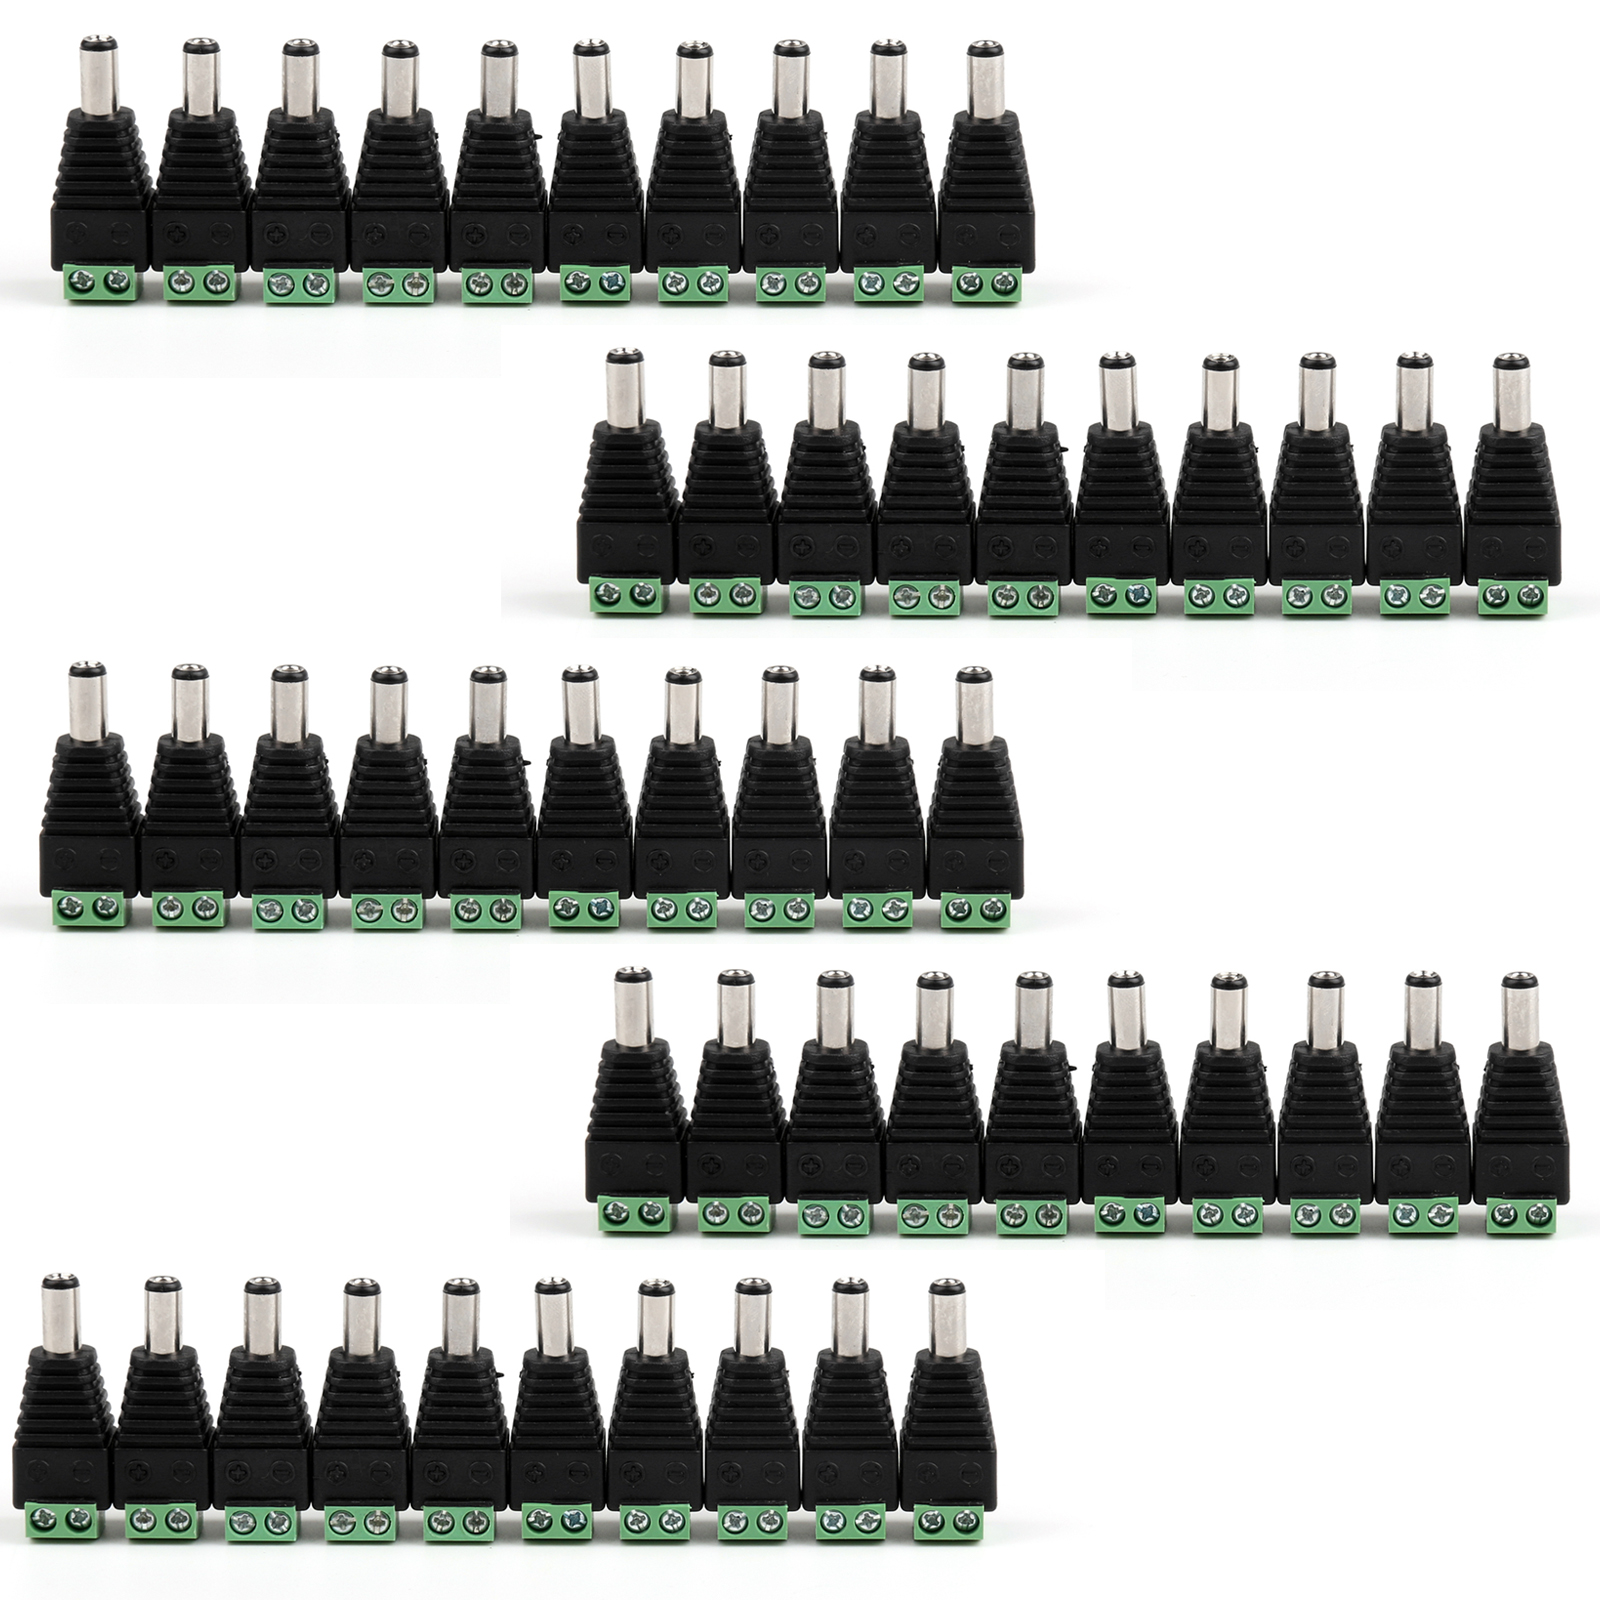 Areyourshop 50Pcs <font><b>5.5</b></font> x 2.5mm <font><b>DC</b></font> Power Male Jack <font><b>Plug</b></font> For CCTV Monitor Camera image